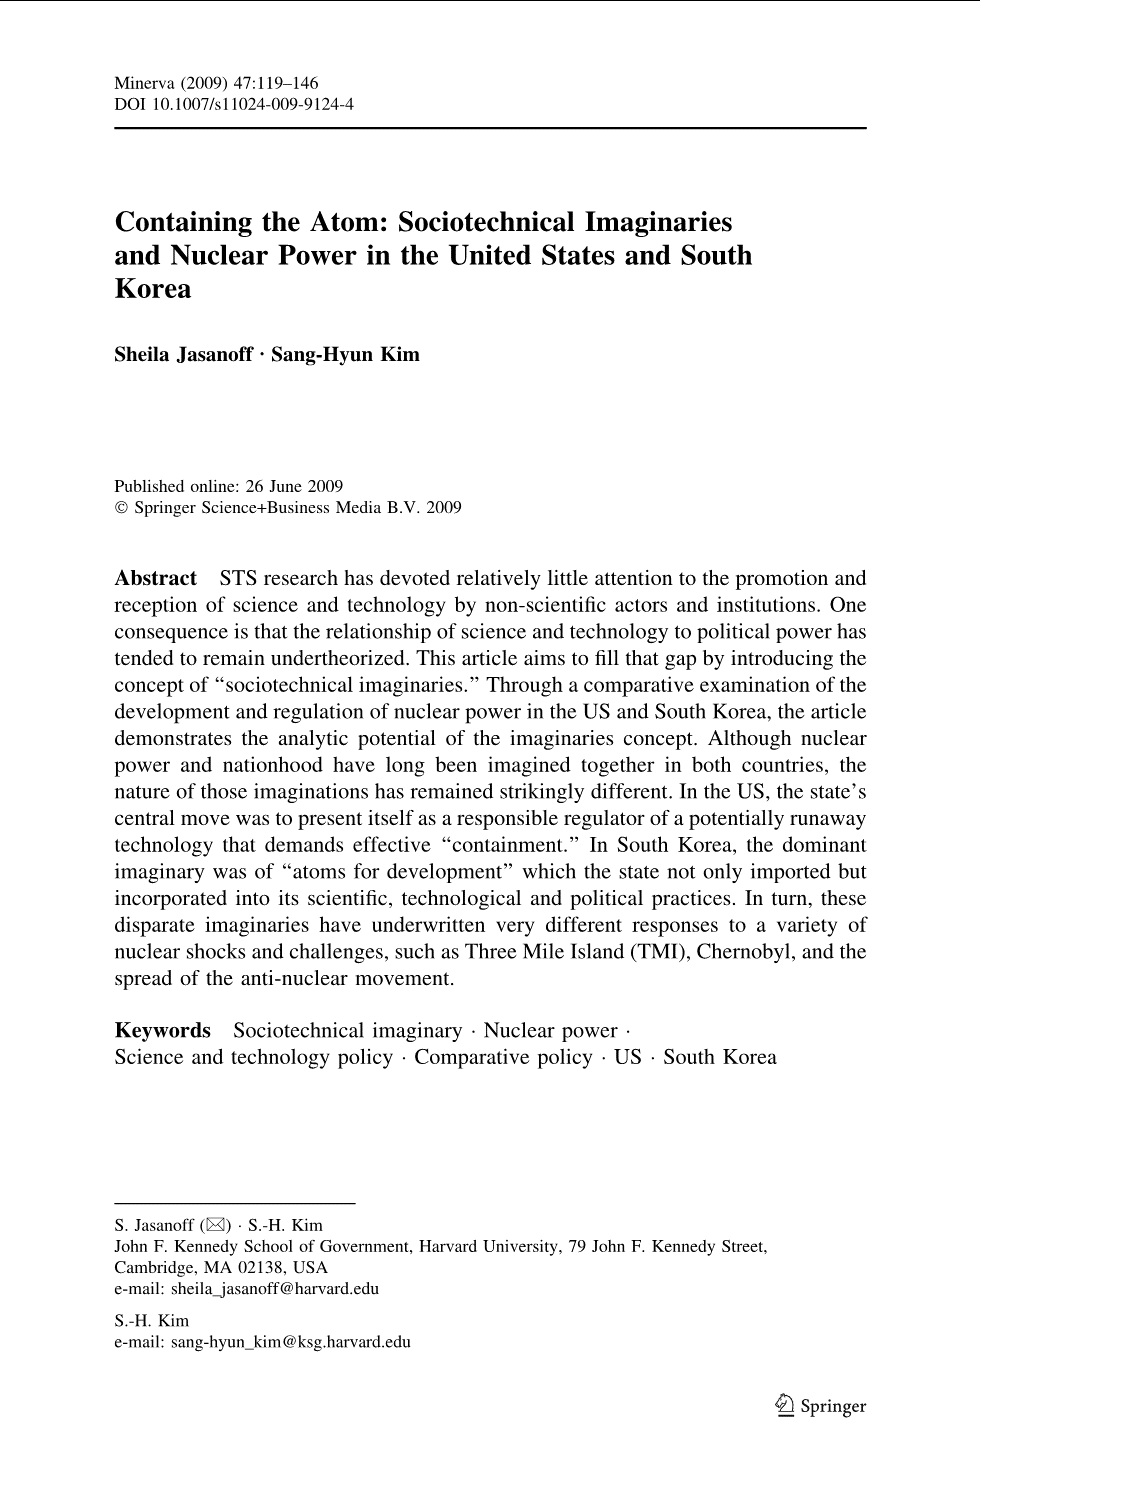 ARTICLE: Containing the Atom: Sociotechnical Imaginaries and Nuclear Power in the United States and South Korea (2009)